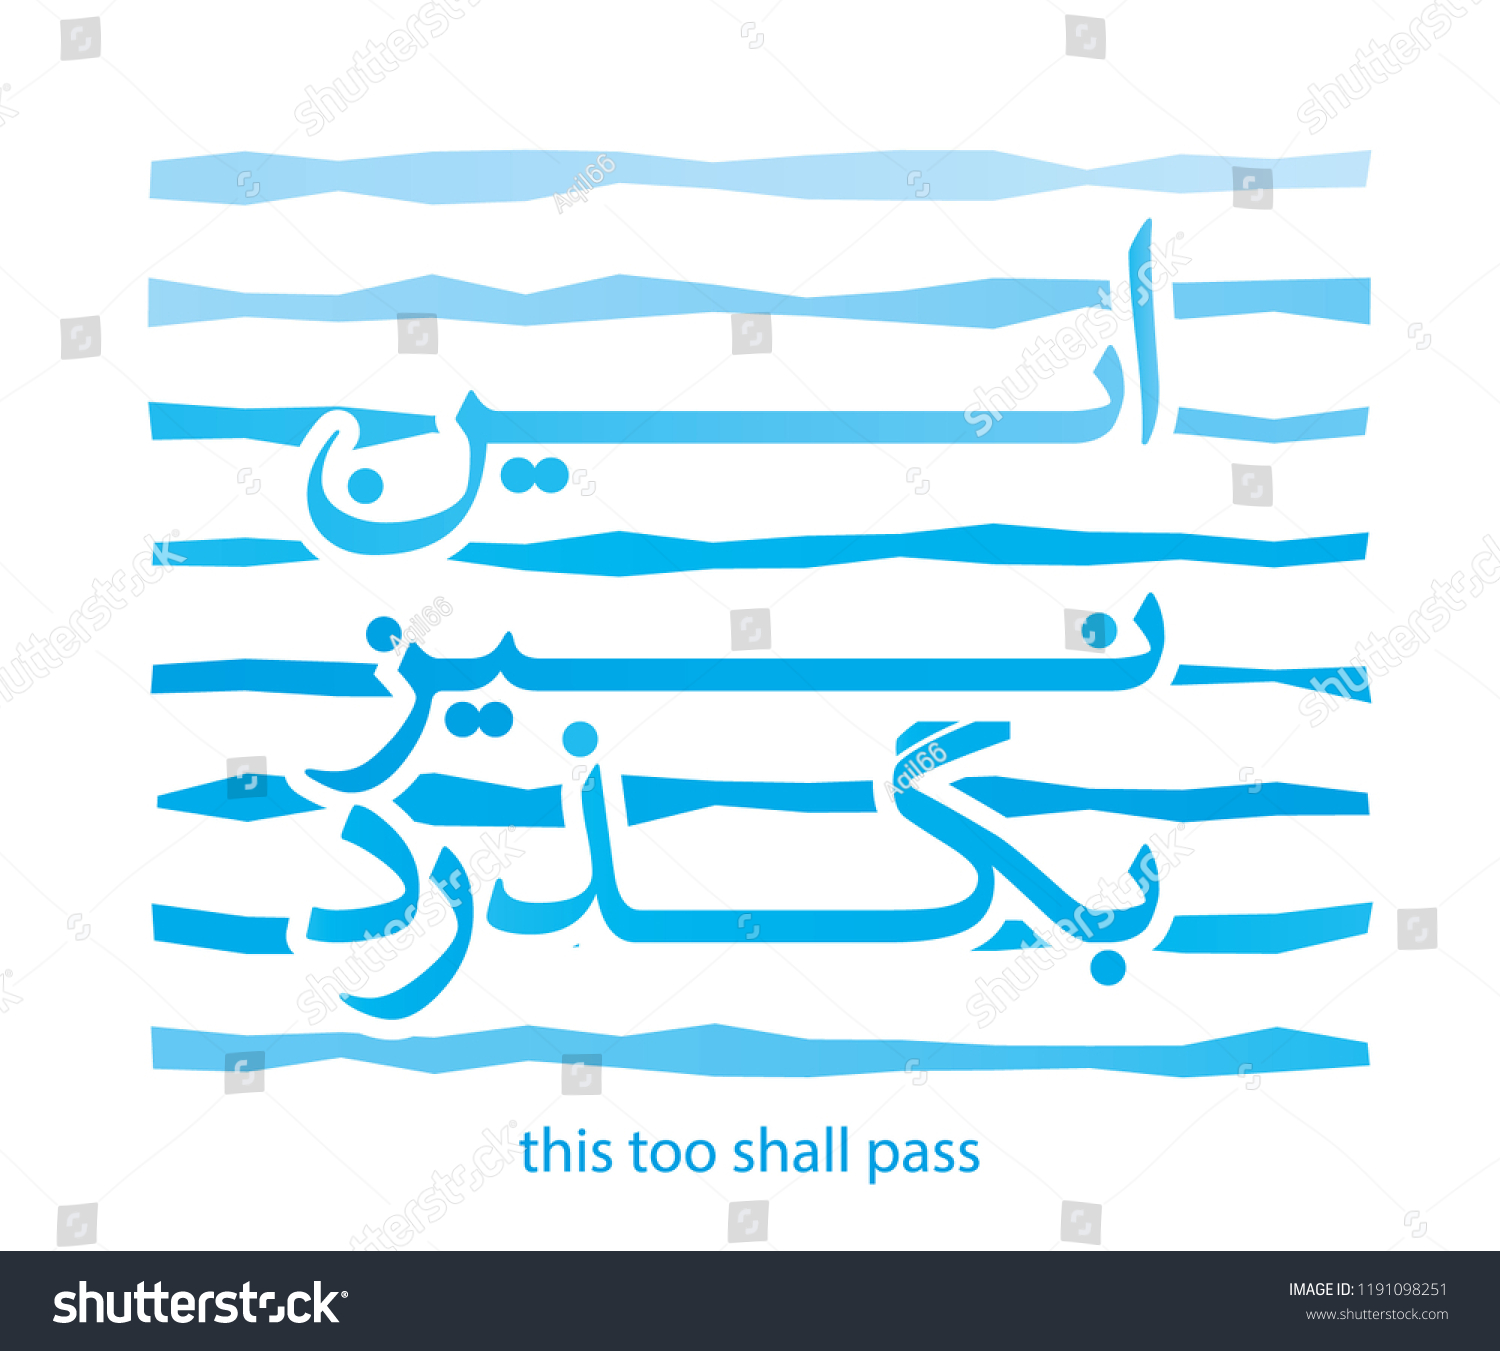 This Shall Pass Persian Proverb Iranian Stock Vector Royalty Free